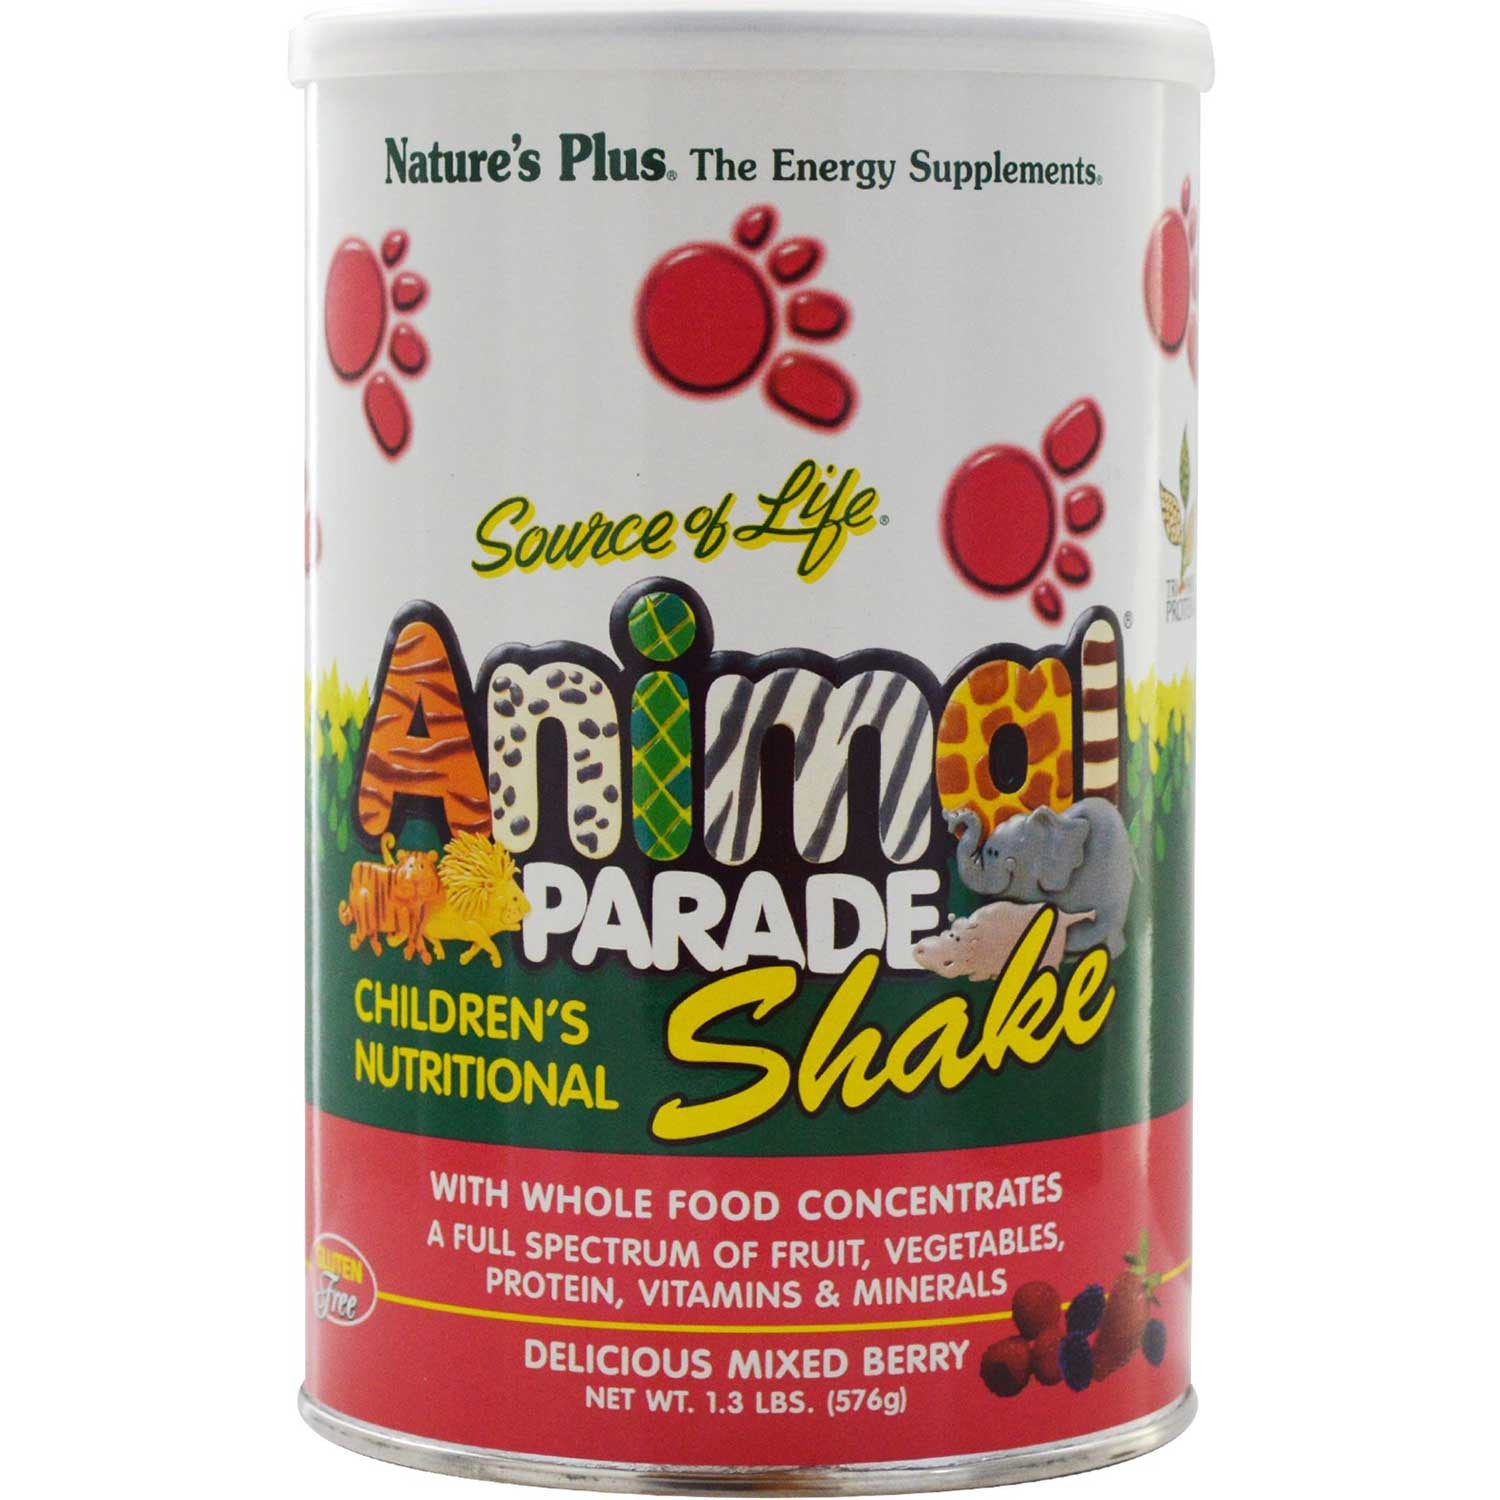 Natures Plus Source of Life Animal Parade Shake (Mixed Berry), 576 g